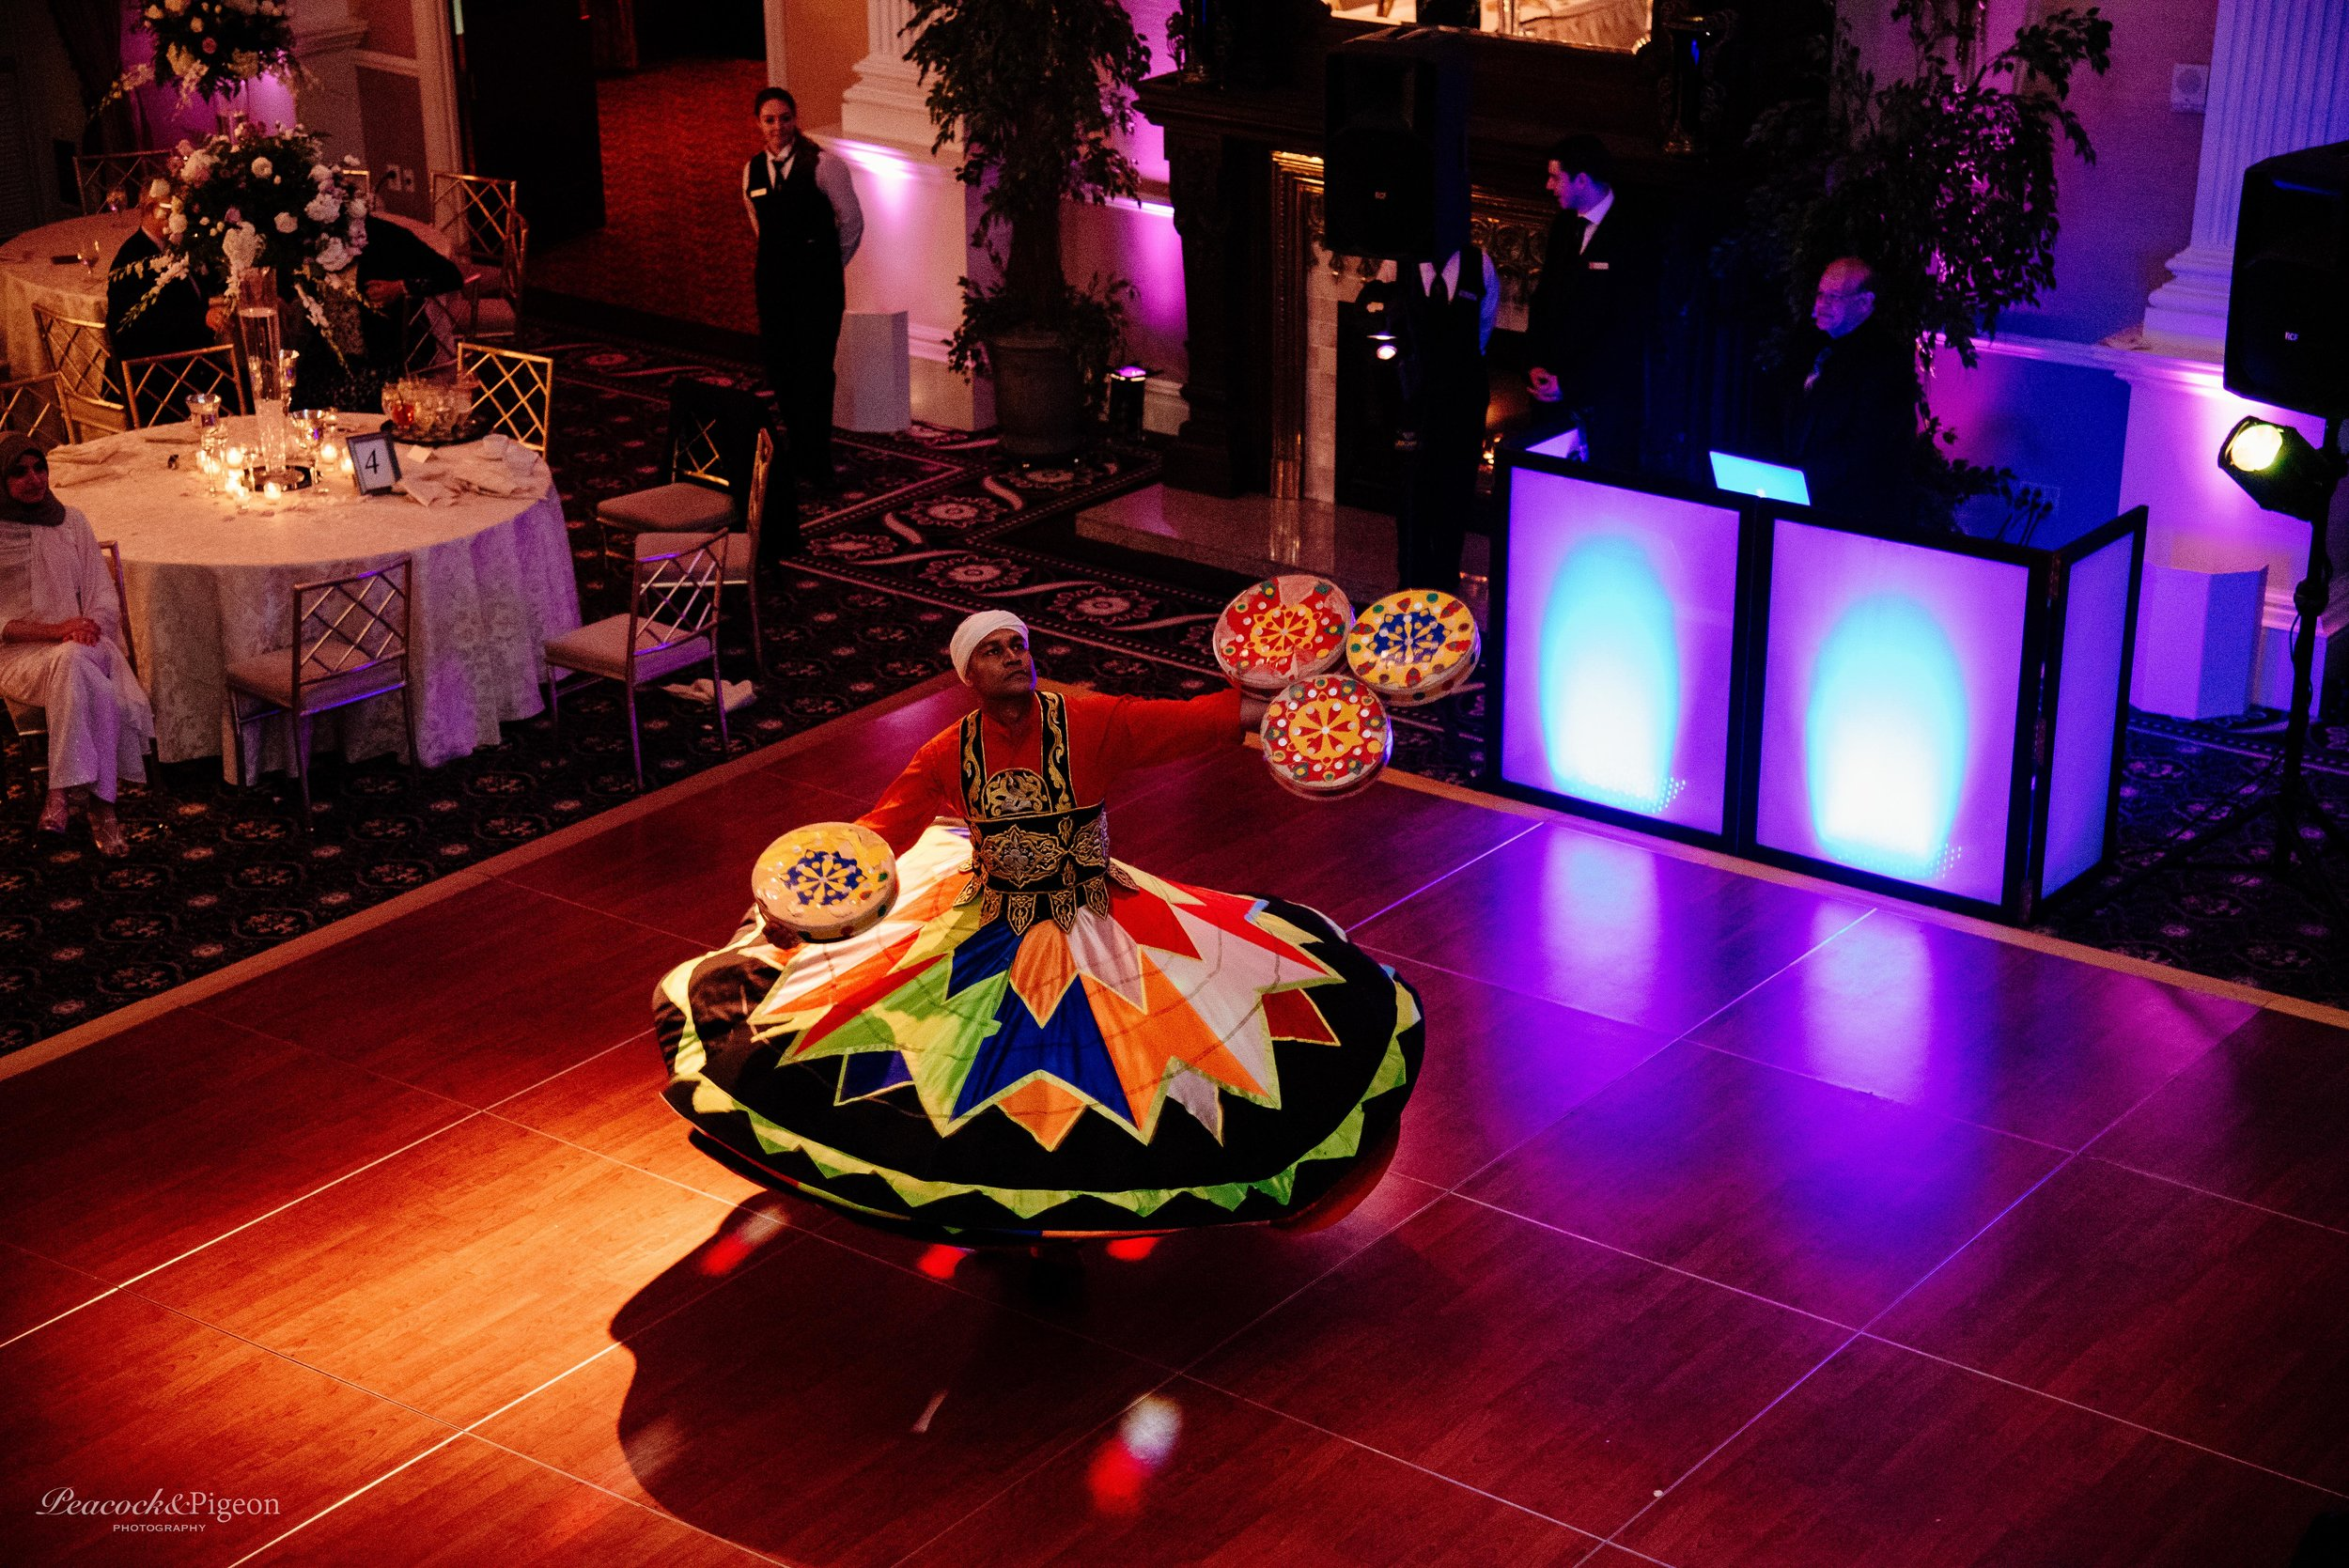 The_Wedding_of_Radwa_and_Kareem_at_Somerset_Palace_Part_Twenty_Egyptian_Dancing_Watermarked-8.jpg